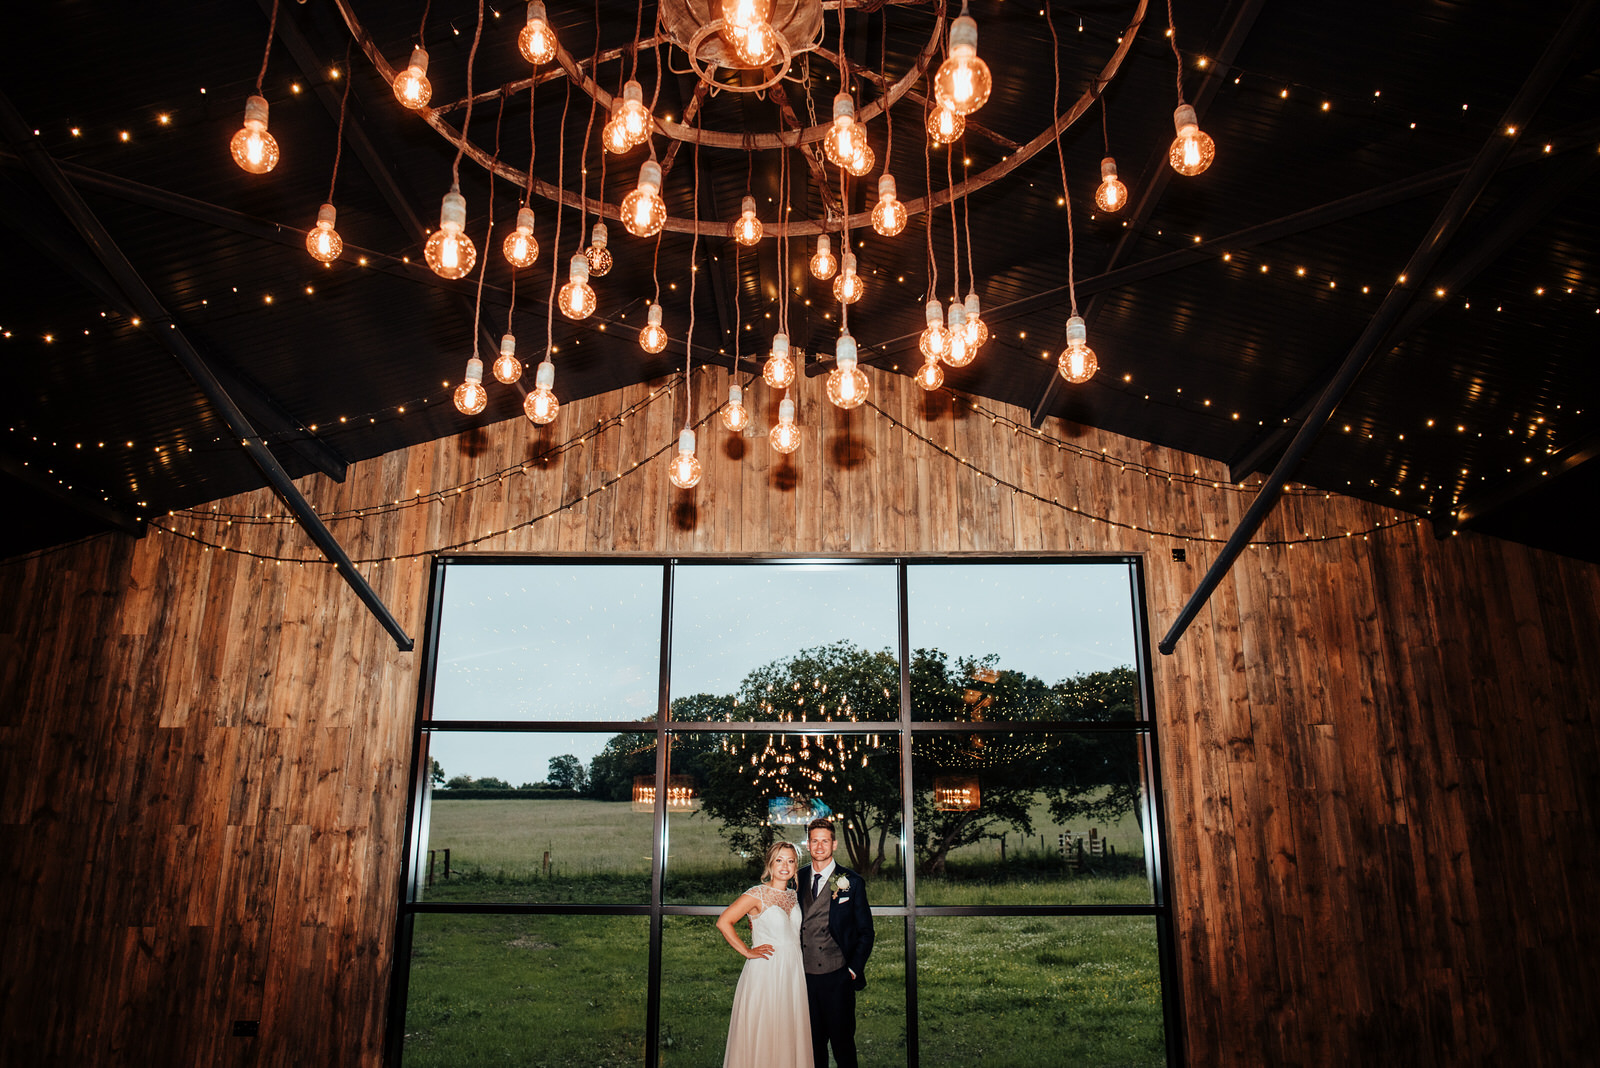 Bride and Groom in The Cow Shed at Silchester Farm